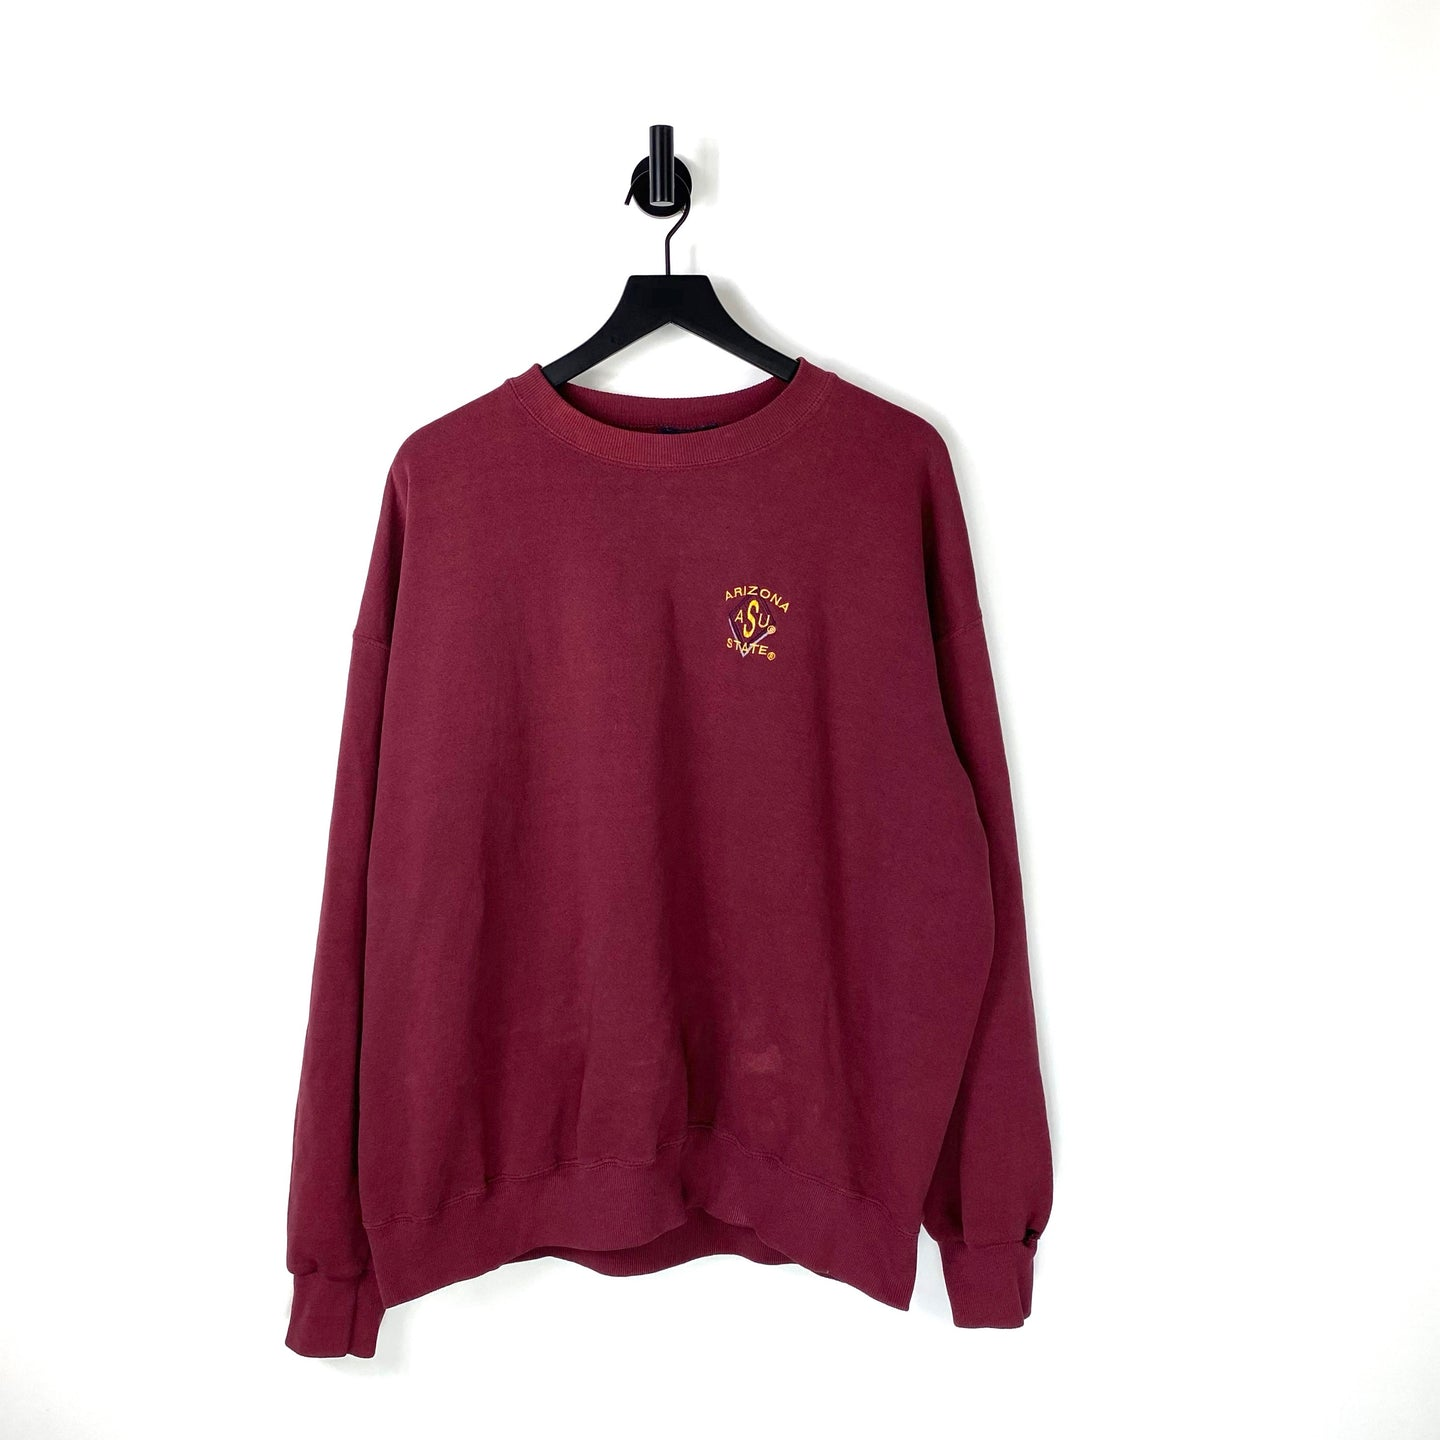 90s ASU Sweatshirt - XL